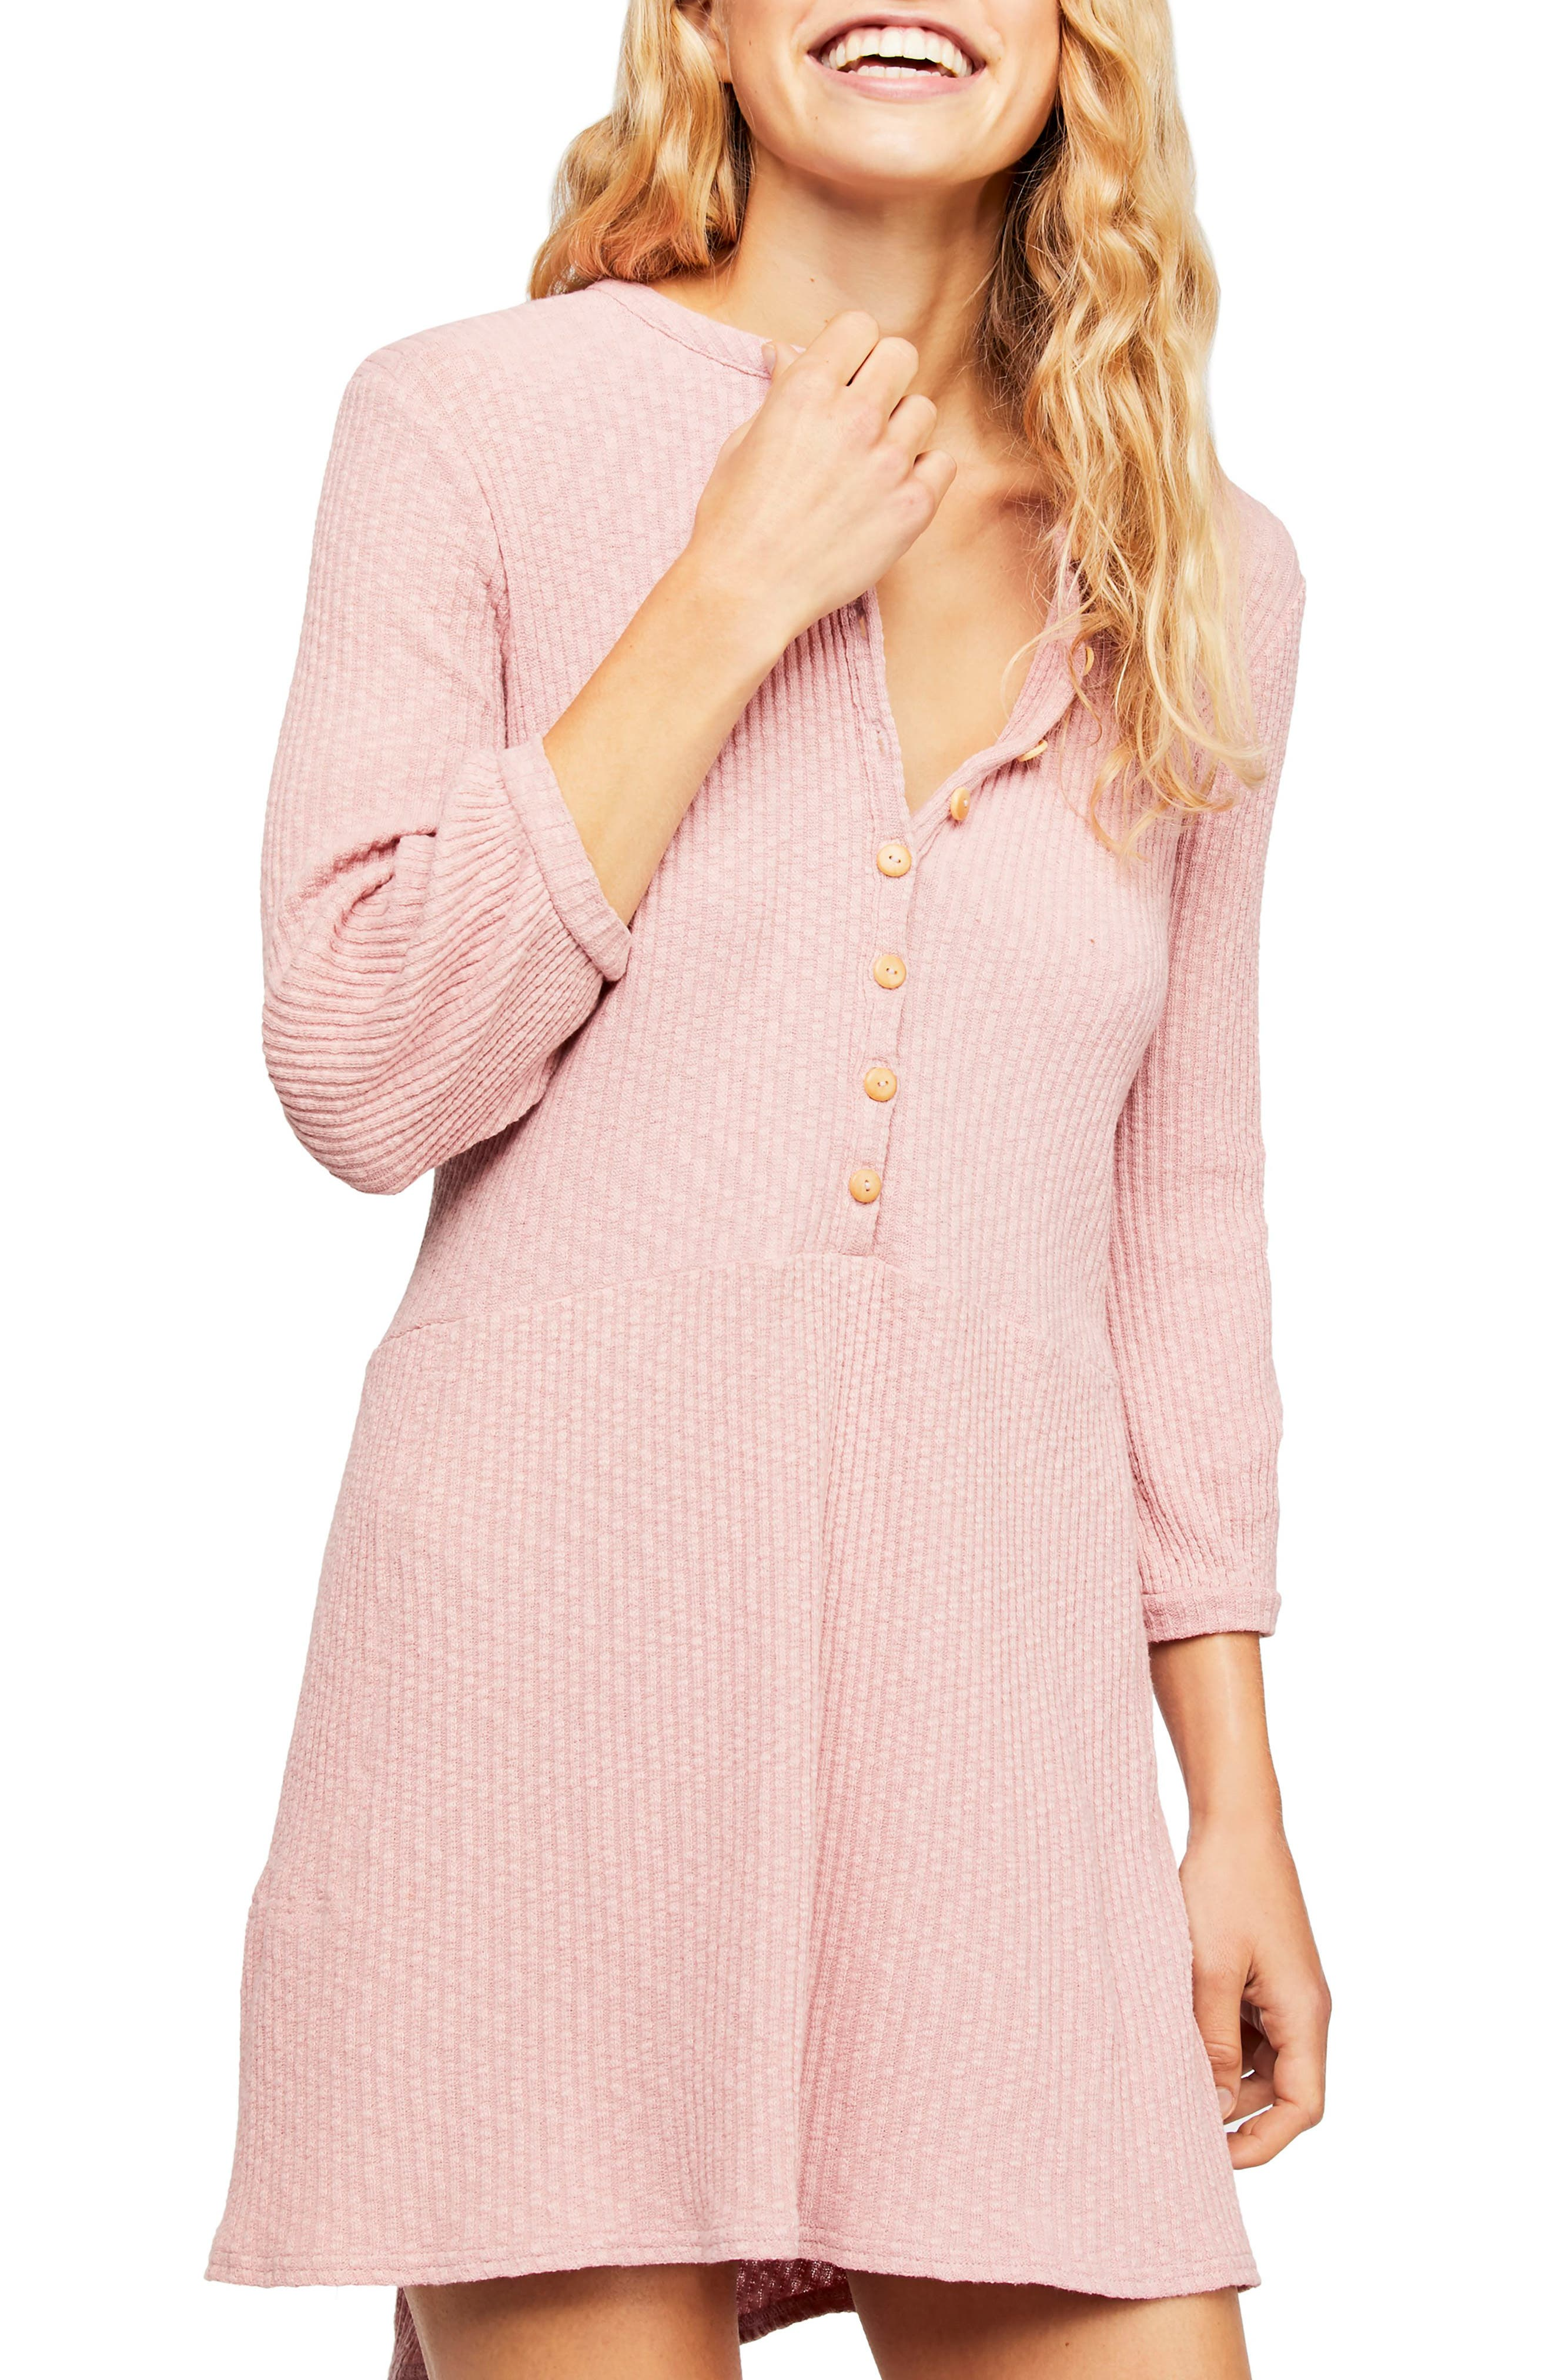 Endless Summer By Free People Blossom Stretch Cotton Dress, Pink